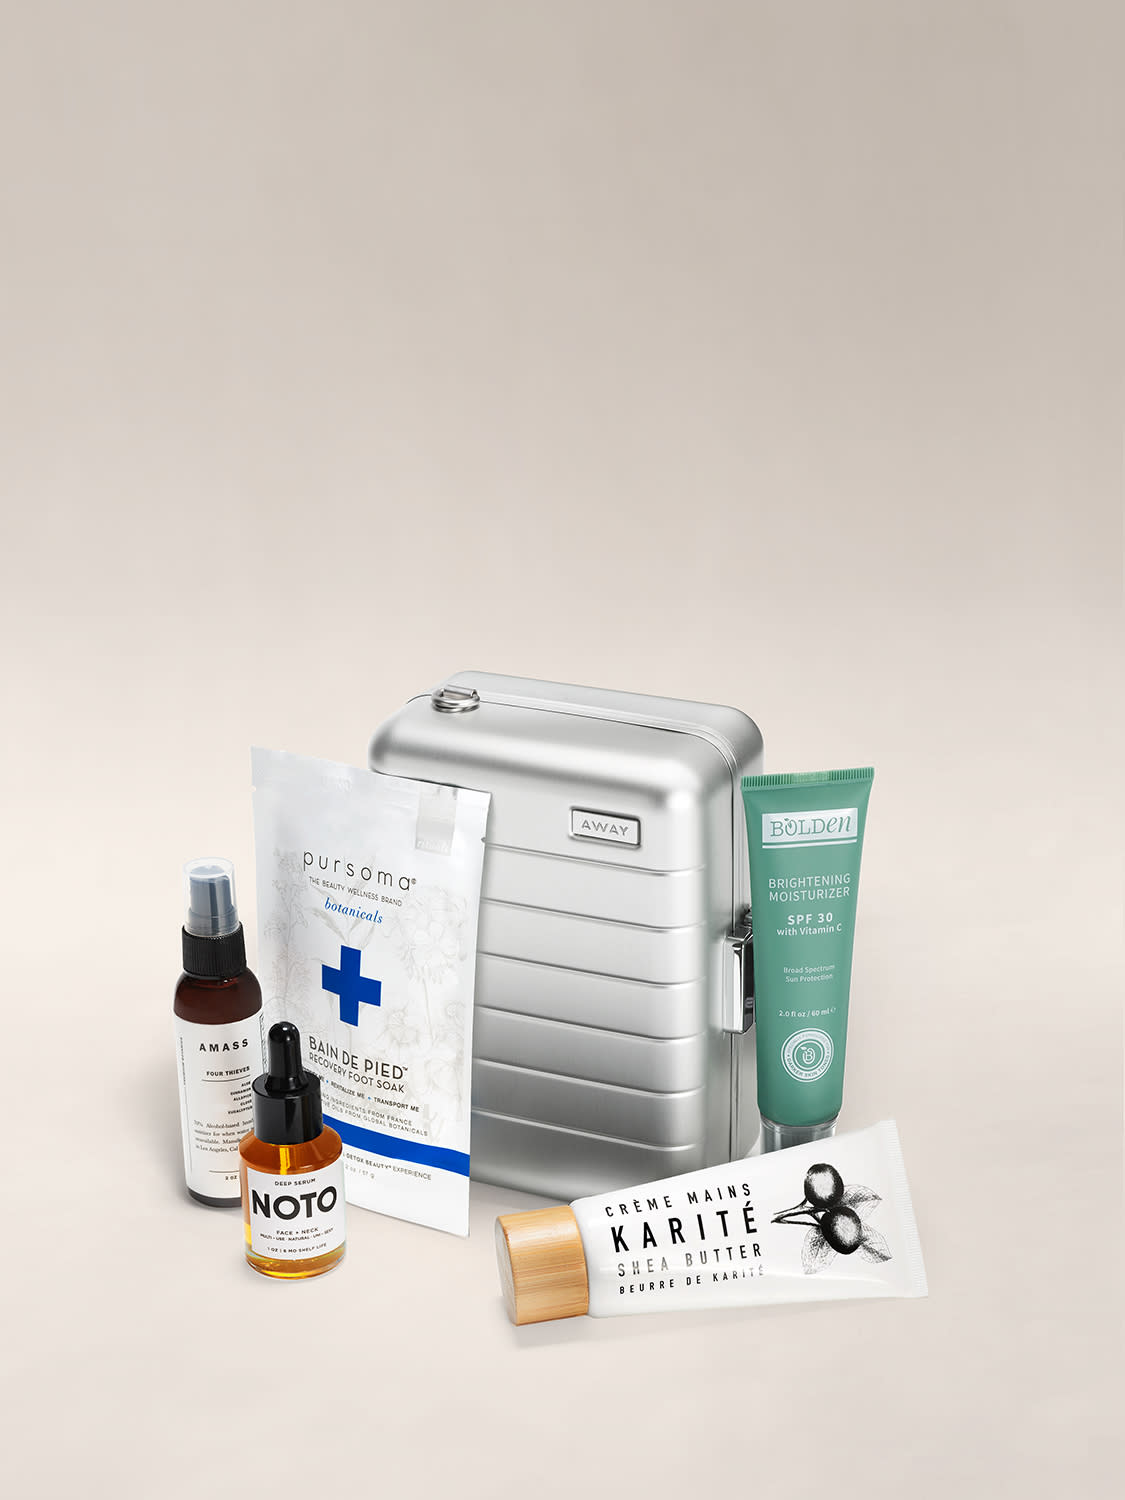 Mini suitcase in aluminum silver shown behind a bottle of hand sanitizer, foot soak, face serum, SPF 30 moisturizer and hand cream.